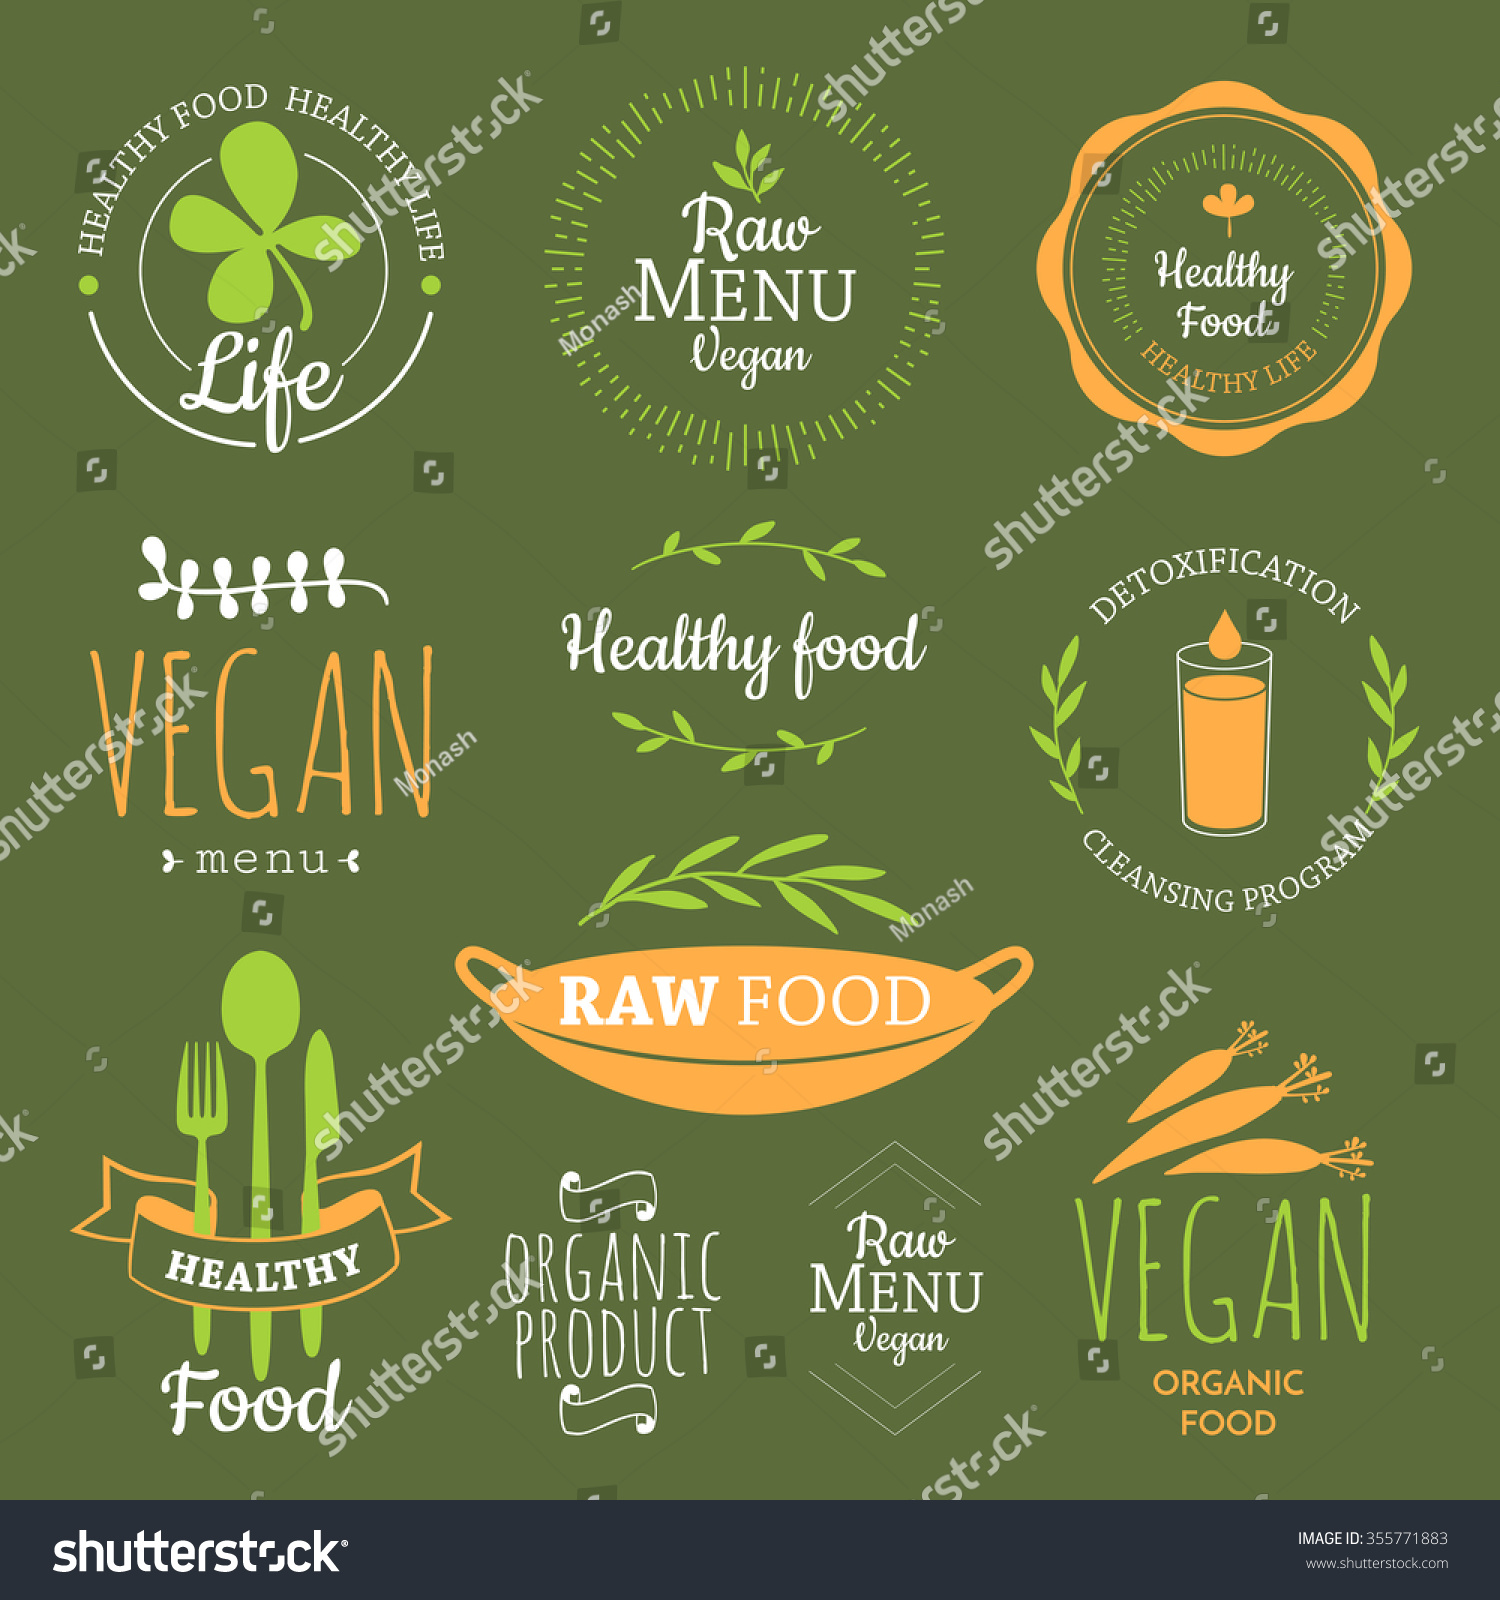 raw and living foods diet essay How a raw food diet affects the body by carly fraser - mar 24, 2014  eating raw, living foods can help improve and support liver function and will result in .